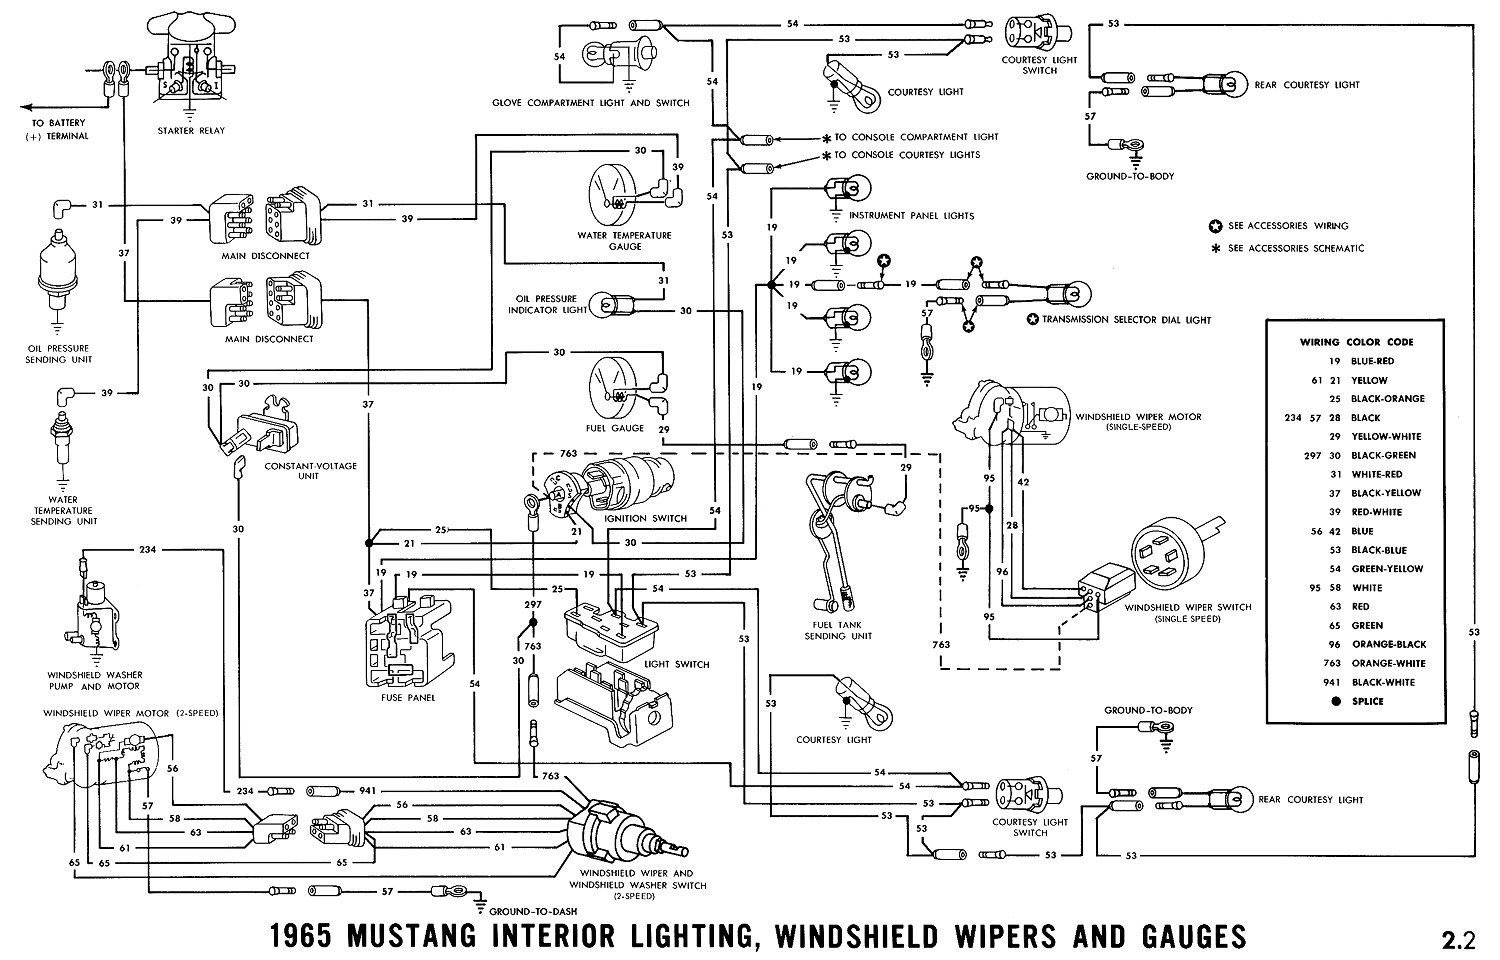 1965g 1965 mustang wiring diagrams average joe restoration 67 mustang dash wiring diagram at virtualis.co